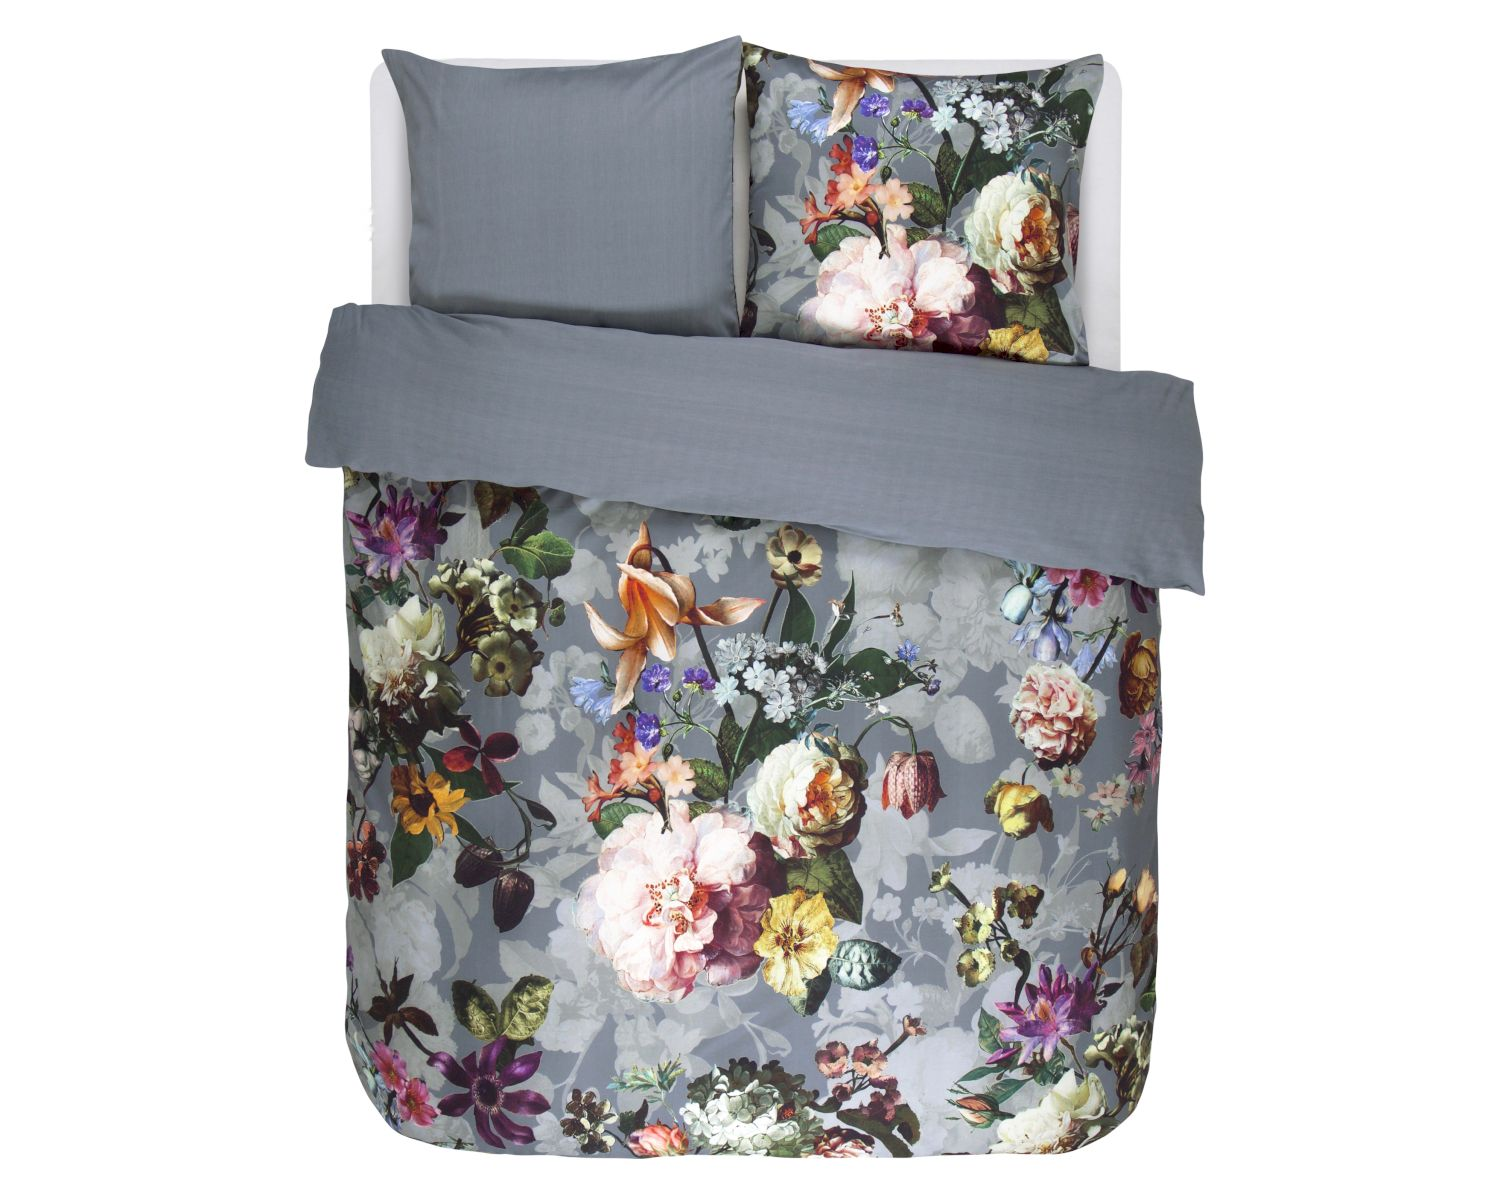 essenza satin bettw sche fleur faded blue. Black Bedroom Furniture Sets. Home Design Ideas